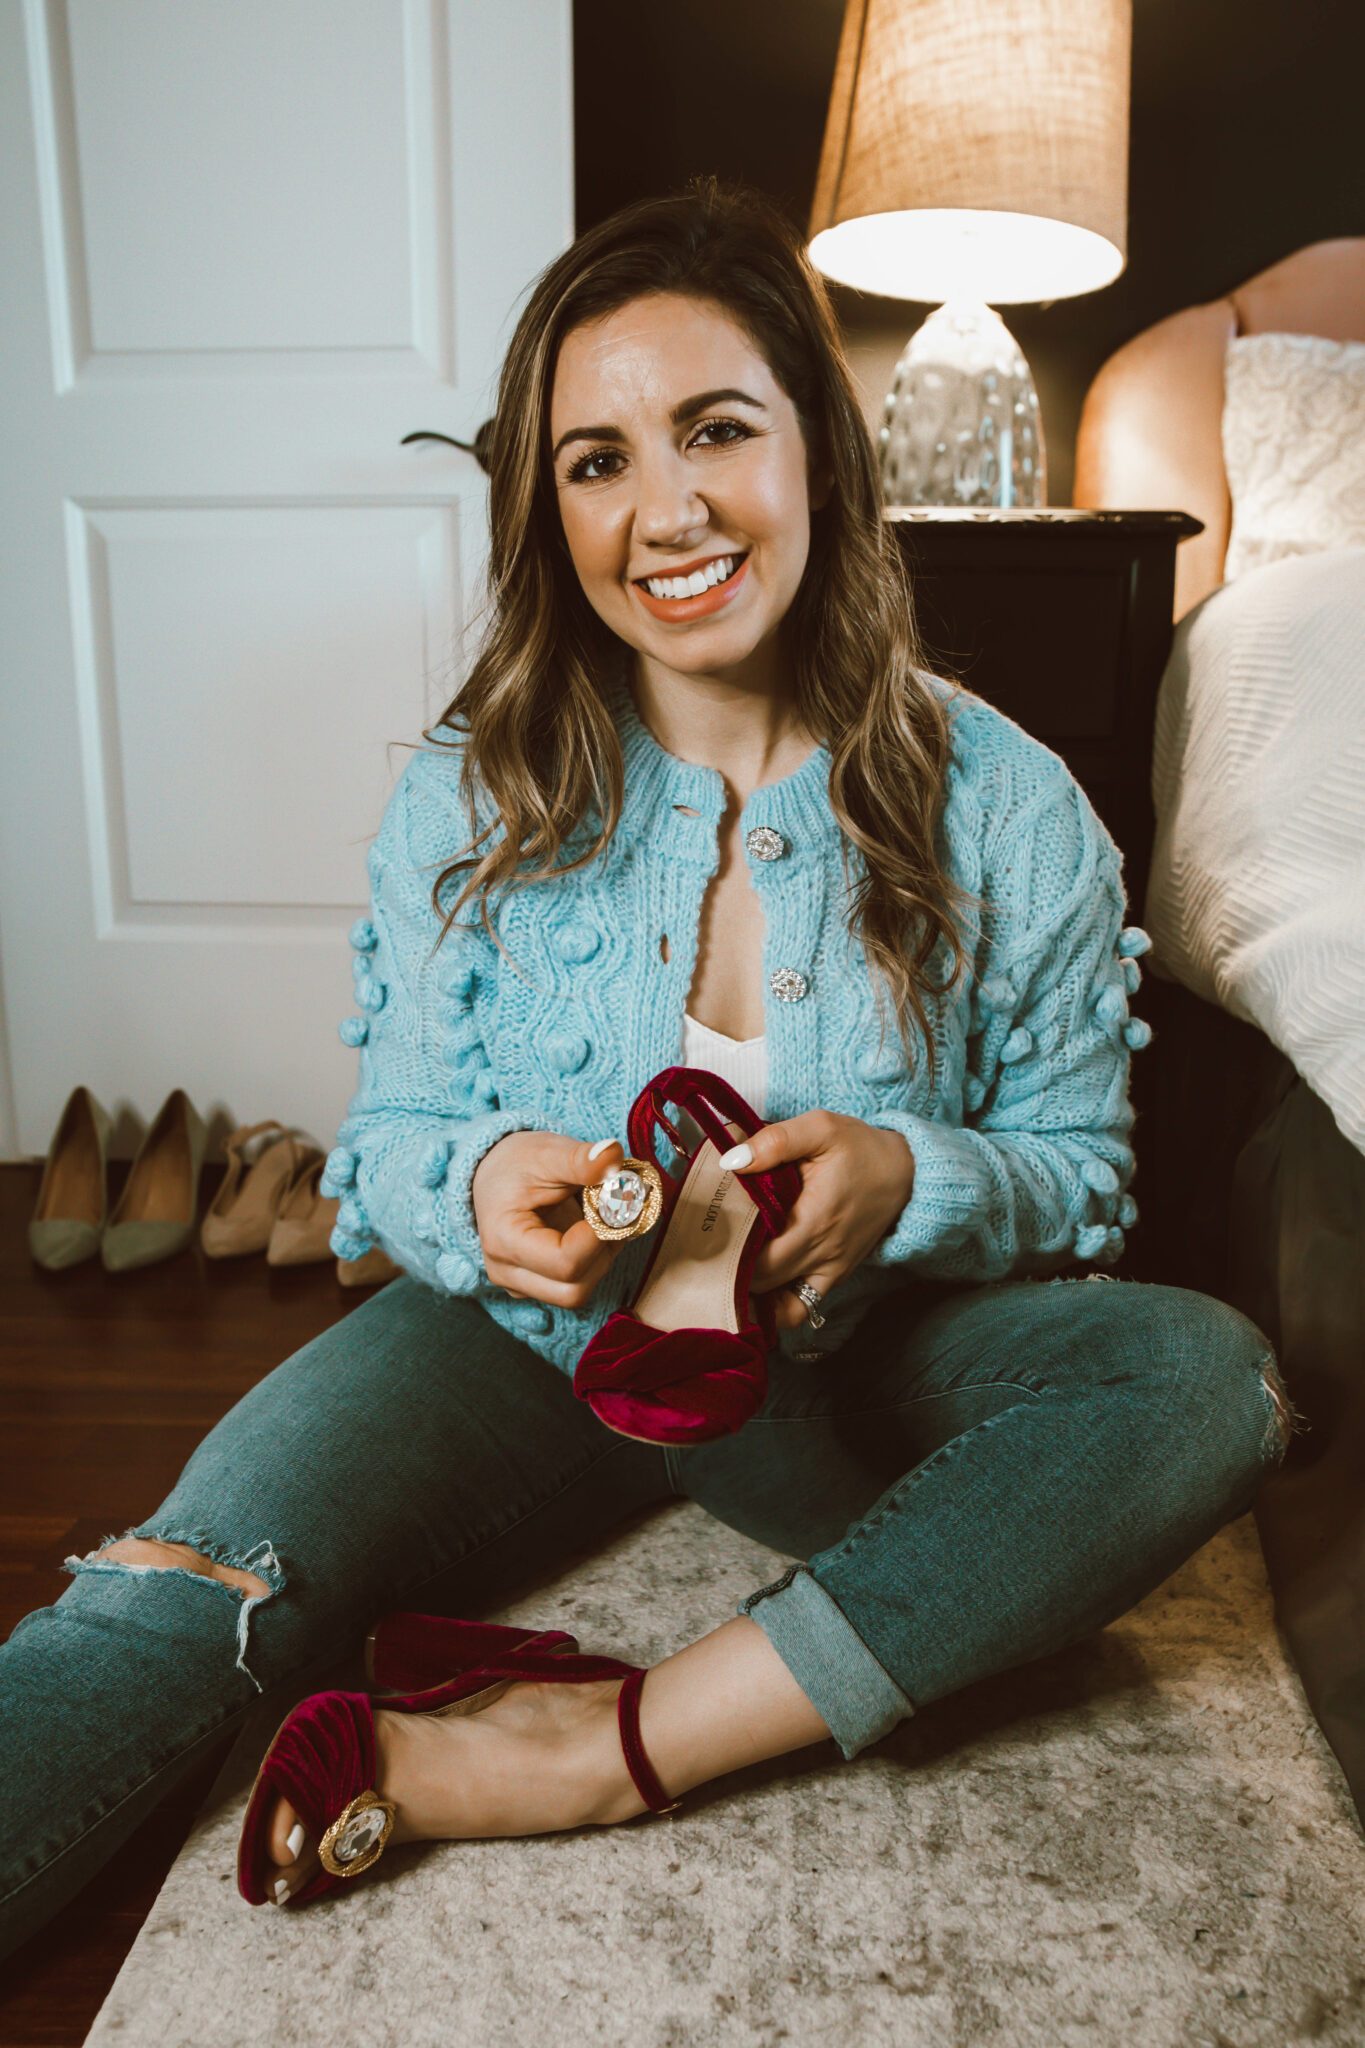 Clip On Earrings by popular Chicago fashion blog, Glass of Glam: image of a woman sitting on her bedroom floor and putting gold clip on earrings on her wine colored velvet sandals.